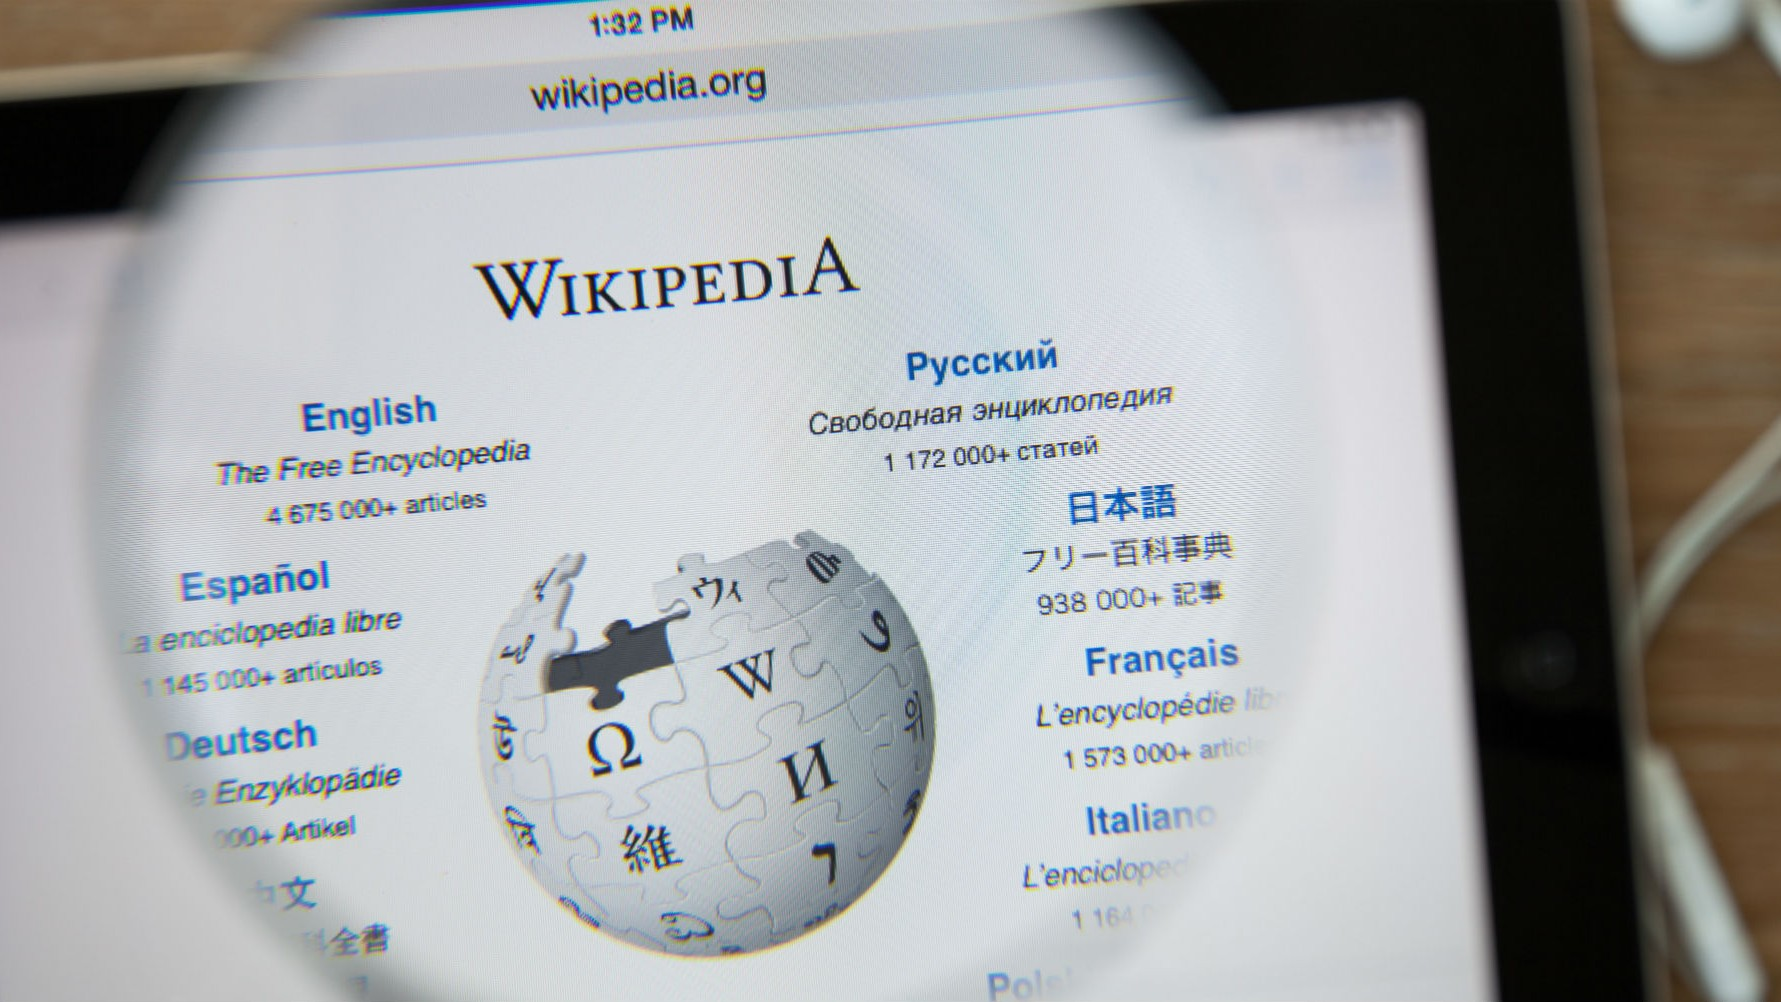 A Page on Hashish Prompts Russia to Block, Then Unblock Wikipedia